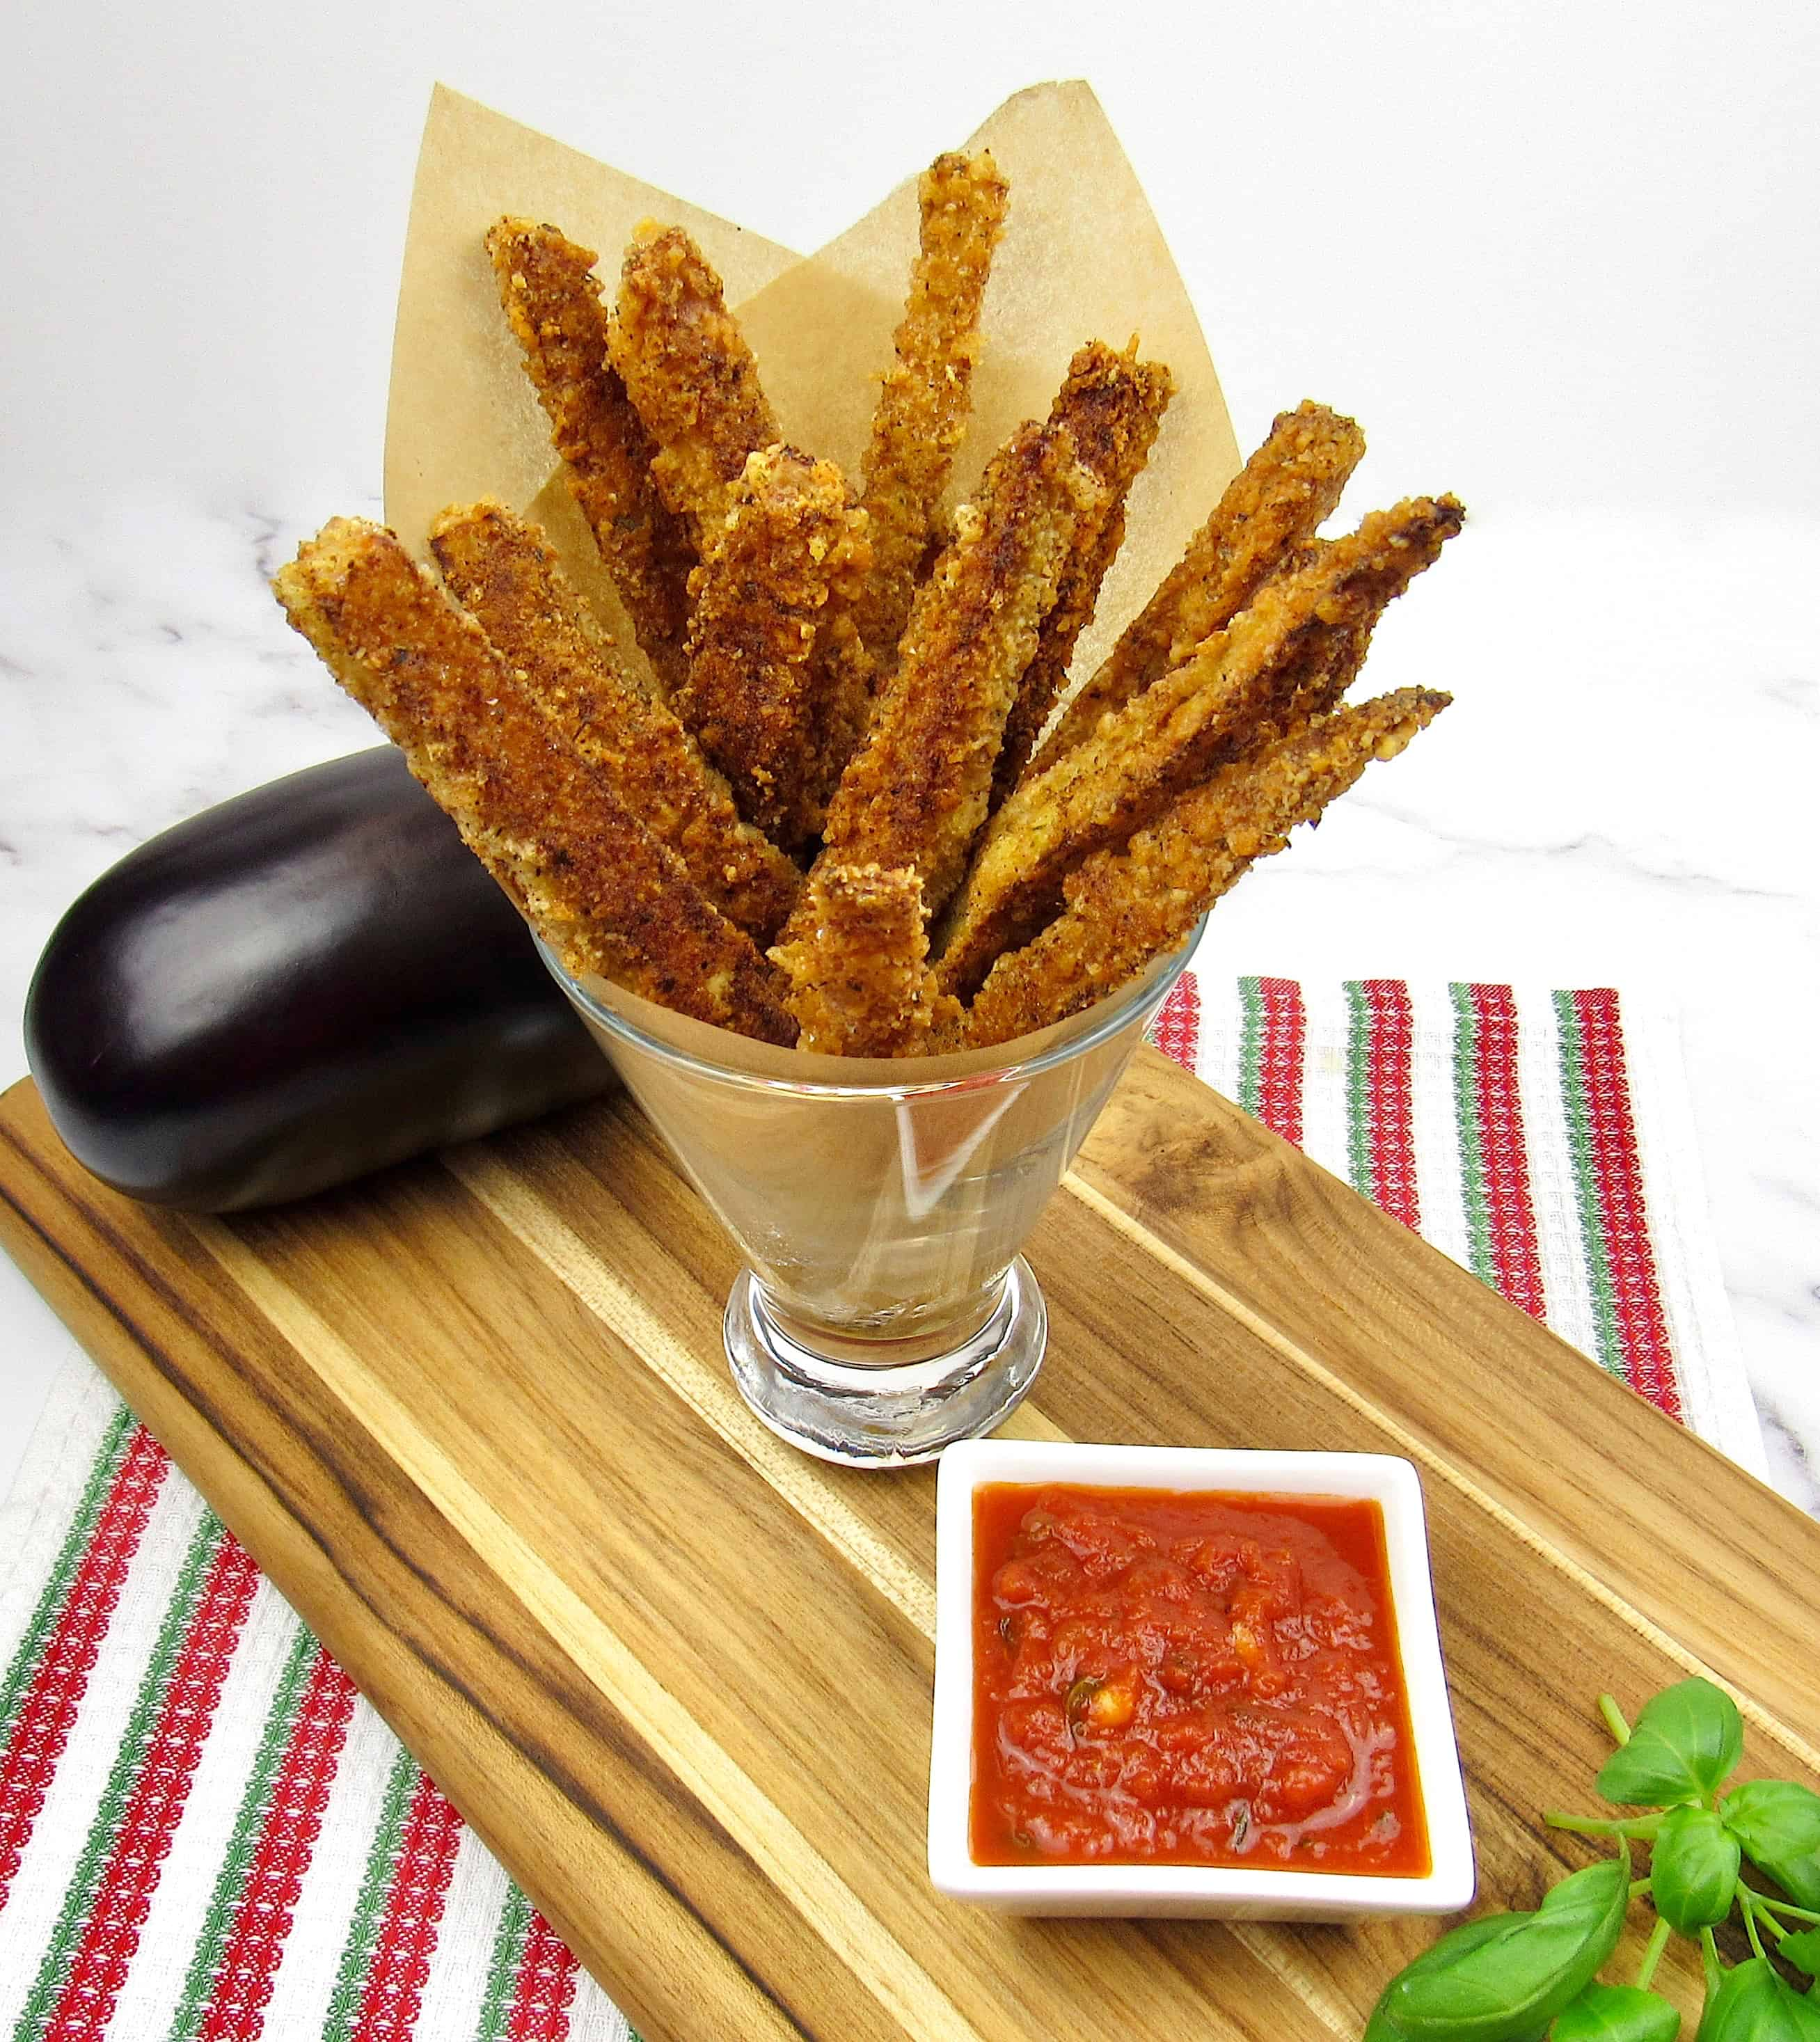 eggplant fries in glass with marinara on side